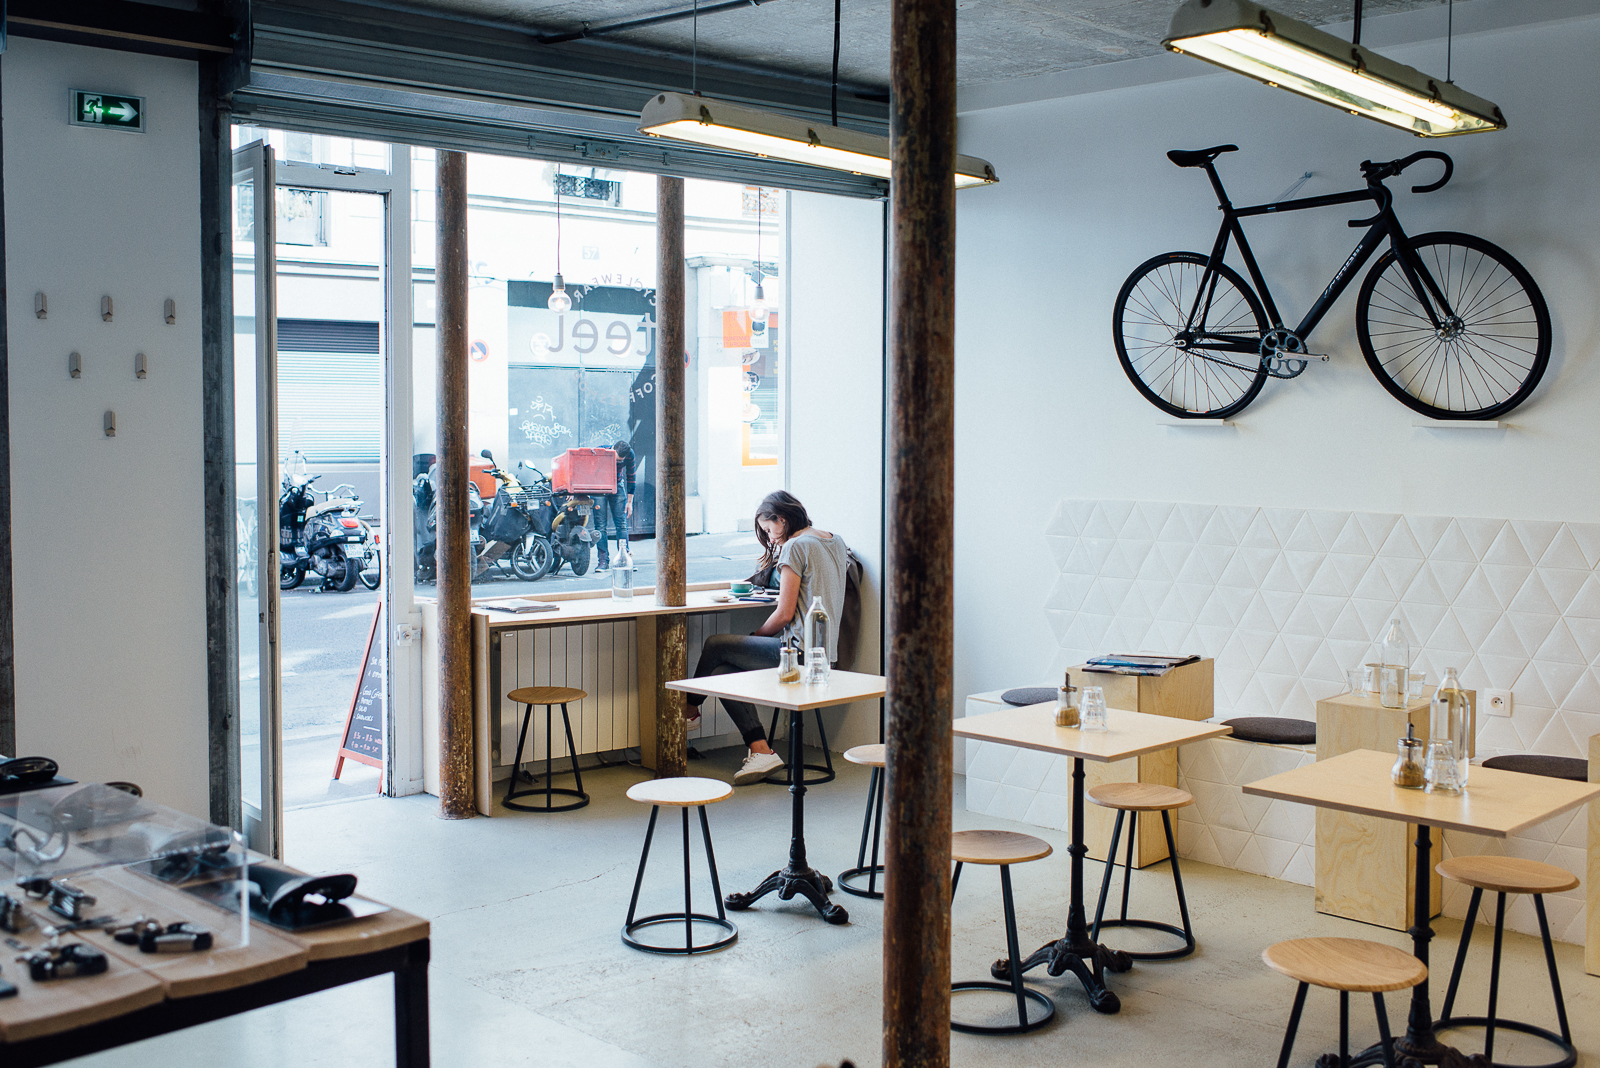 HiP Paris blog. A look back at 2015. Steel Cyclewear & Coffeeshop.